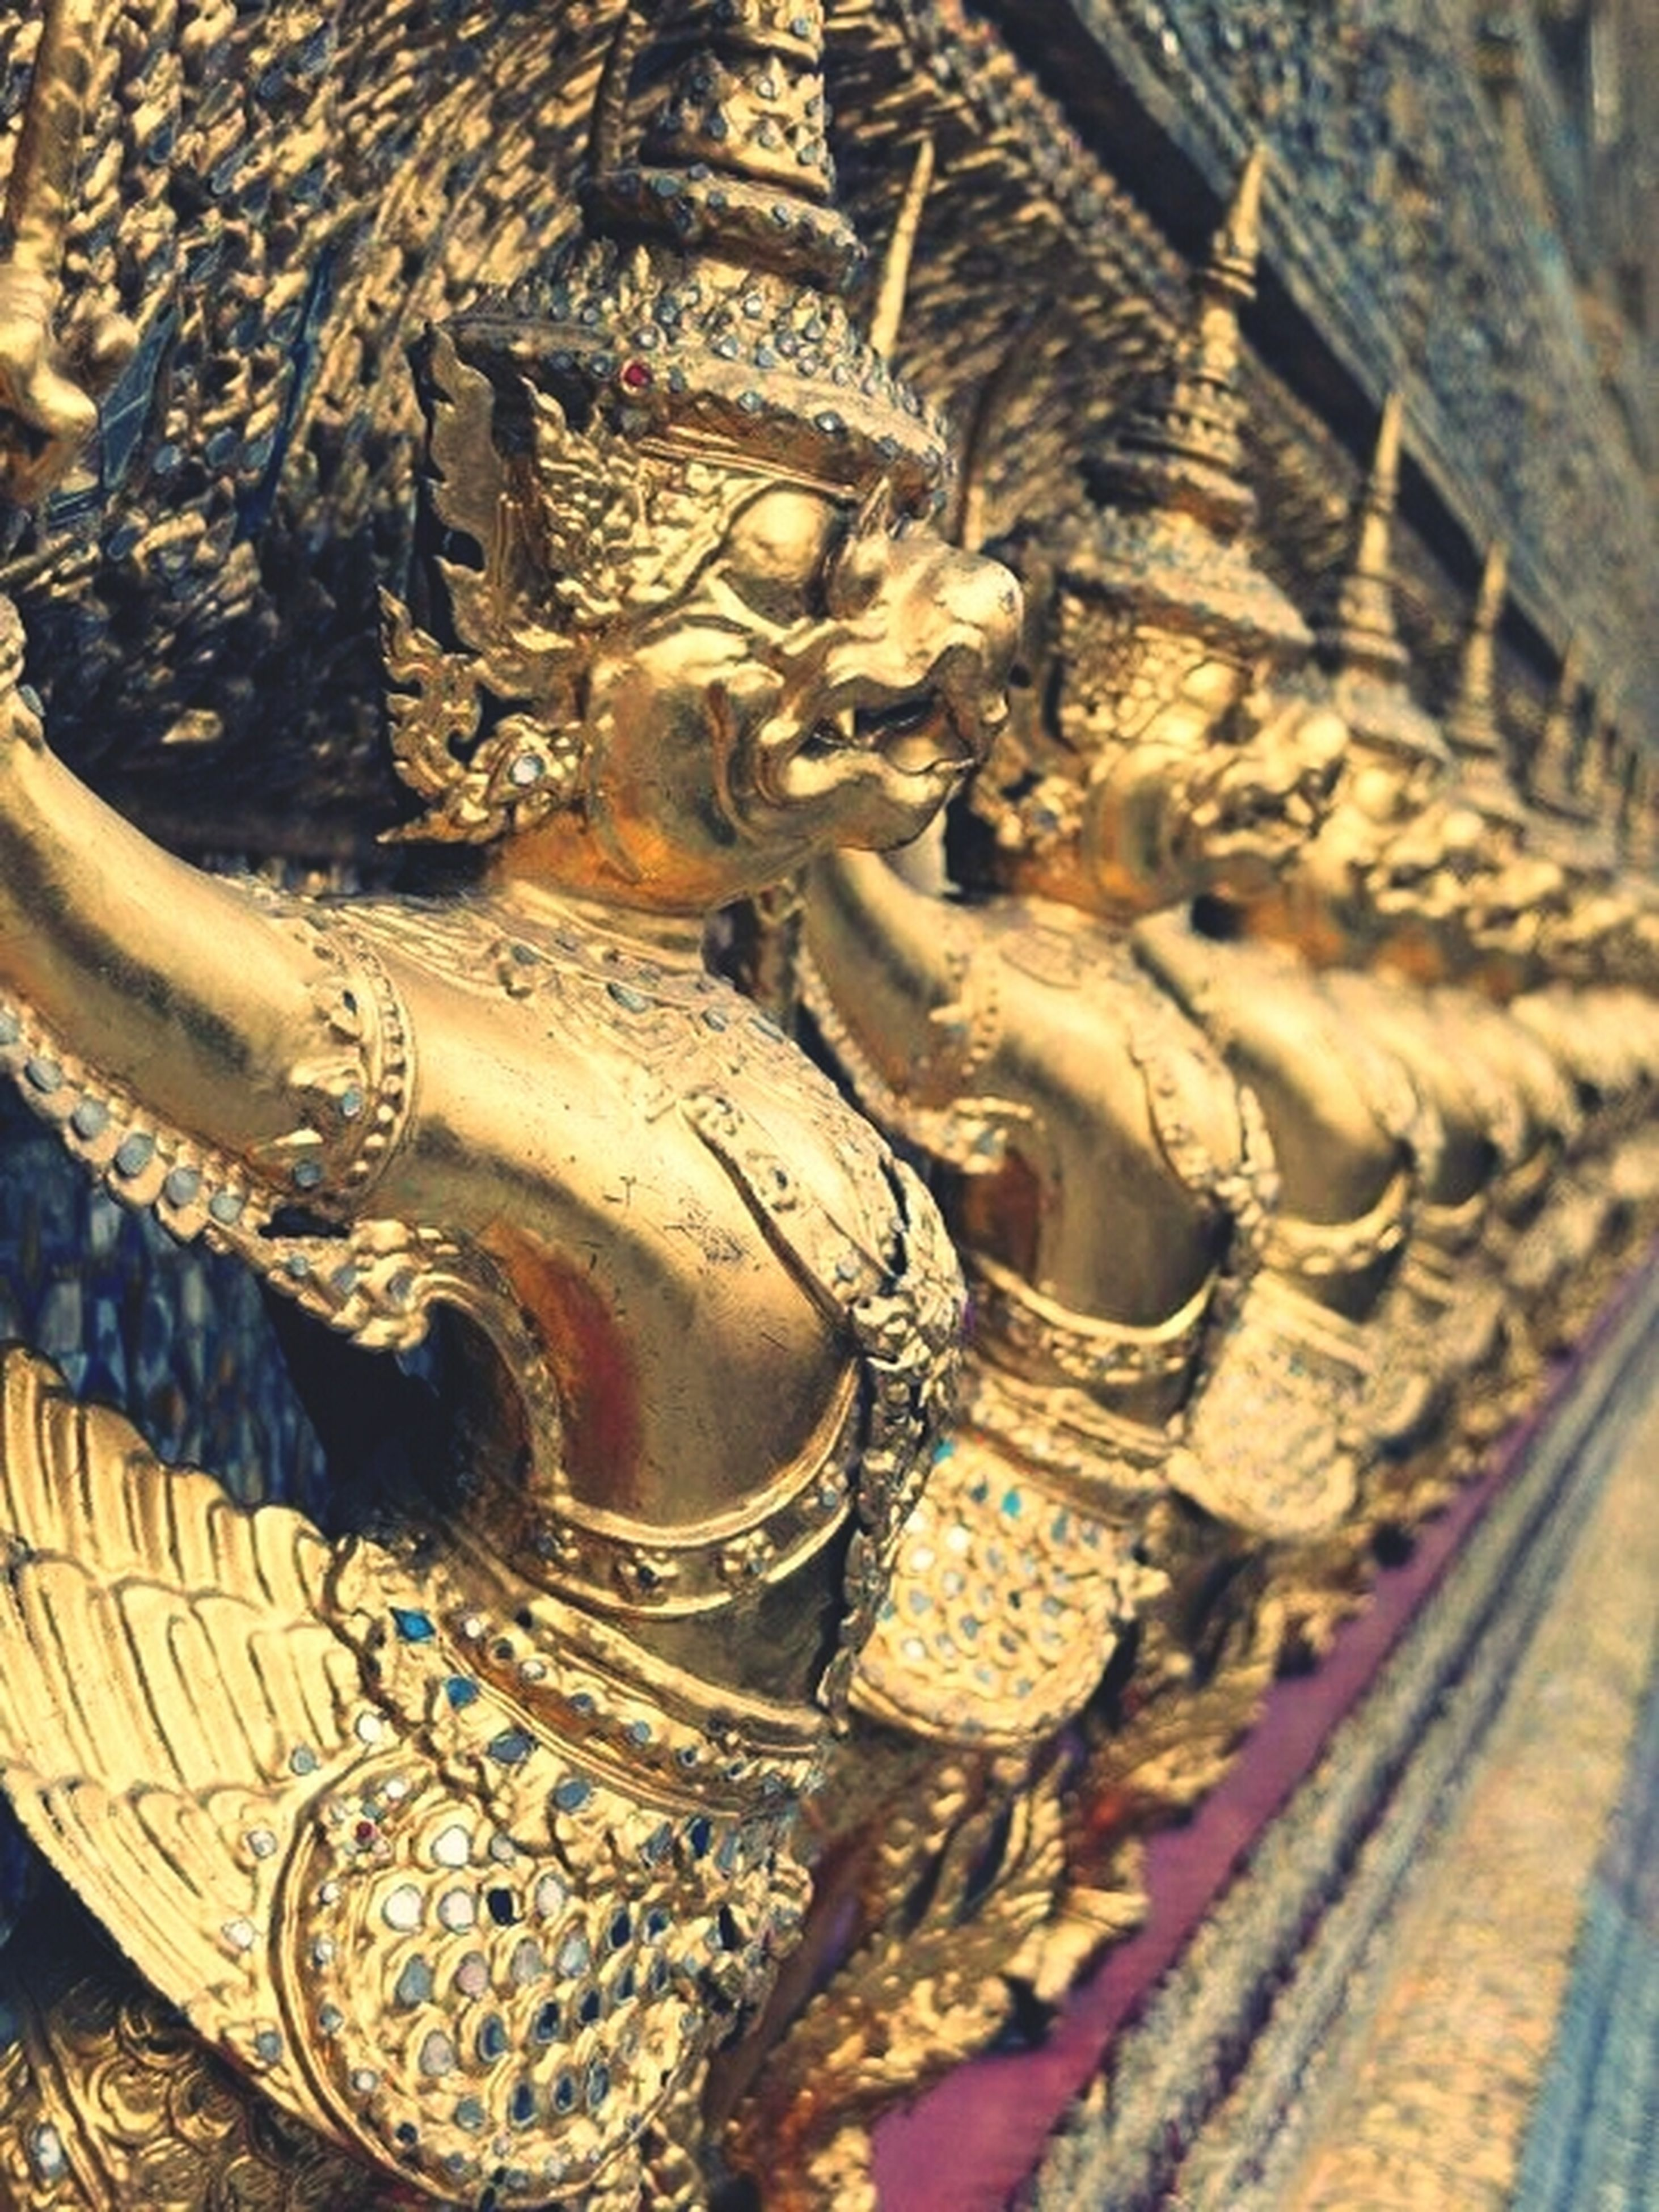 art and craft, art, statue, sculpture, creativity, human representation, religion, carving - craft product, spirituality, place of worship, low angle view, famous place, architecture, temple - building, built structure, history, ornate, gold colored